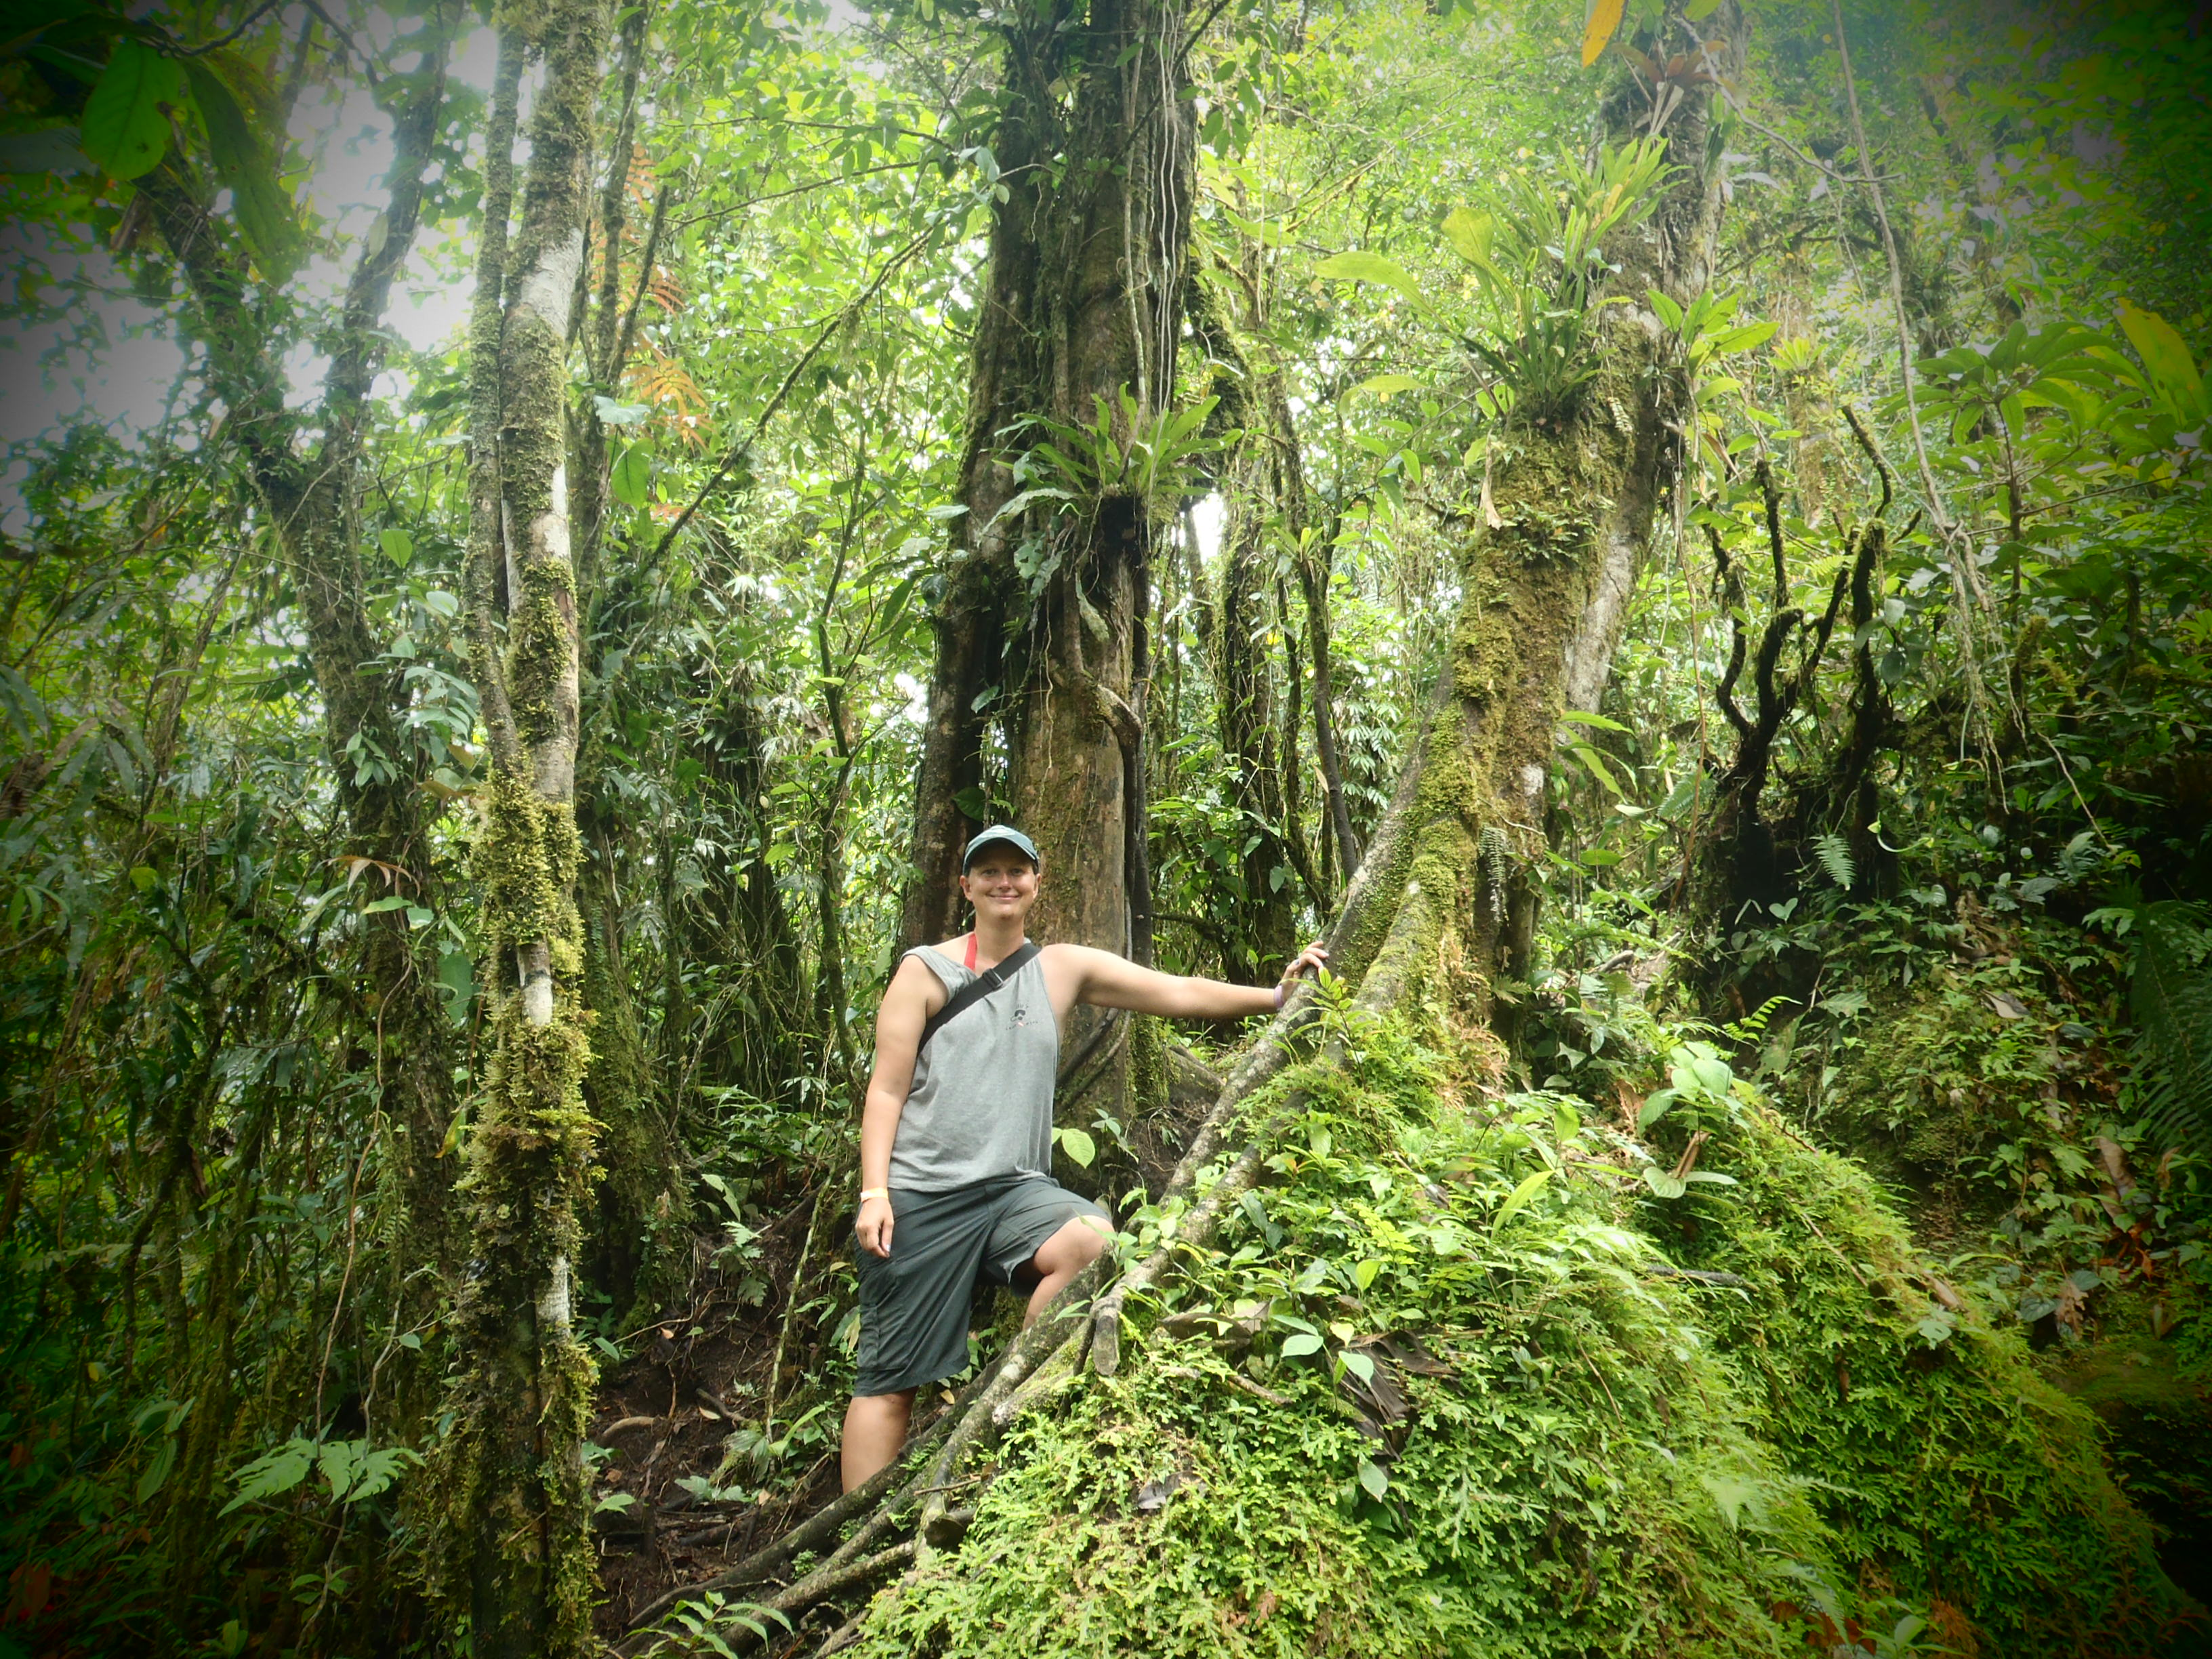 Posing during Hiking; Volcan Arenal, Costa Rica; 2013